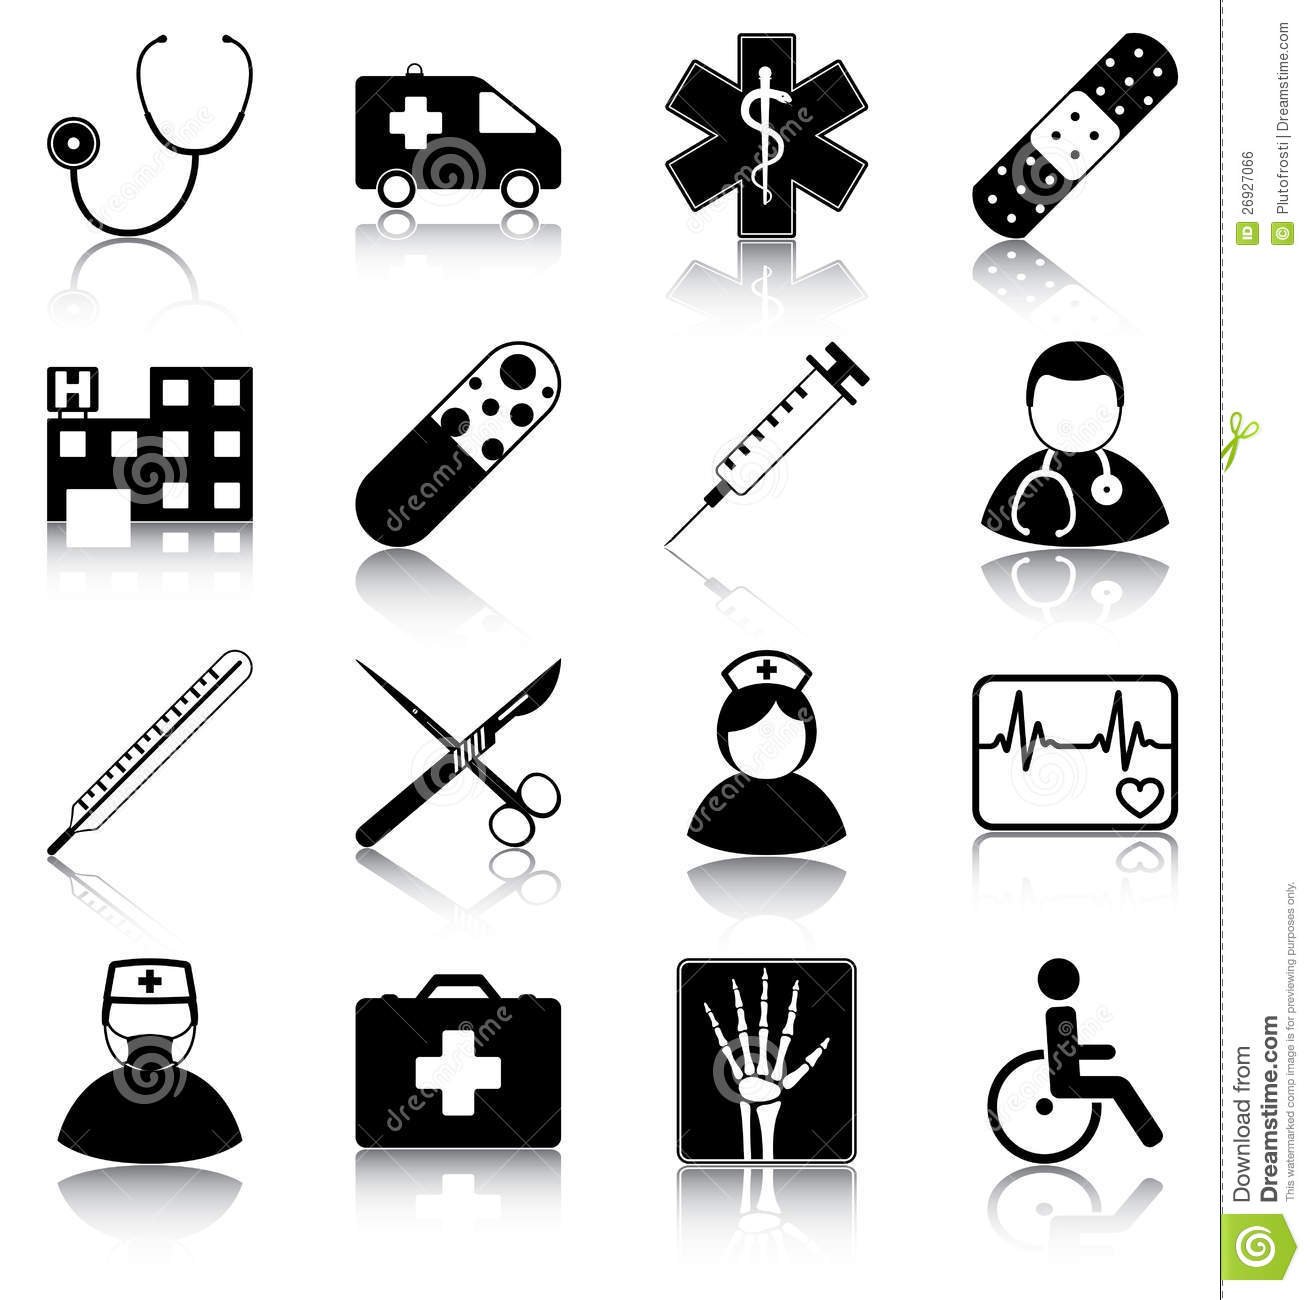 Medical Symbols Royalty Free Stock Image - Image: 26927066